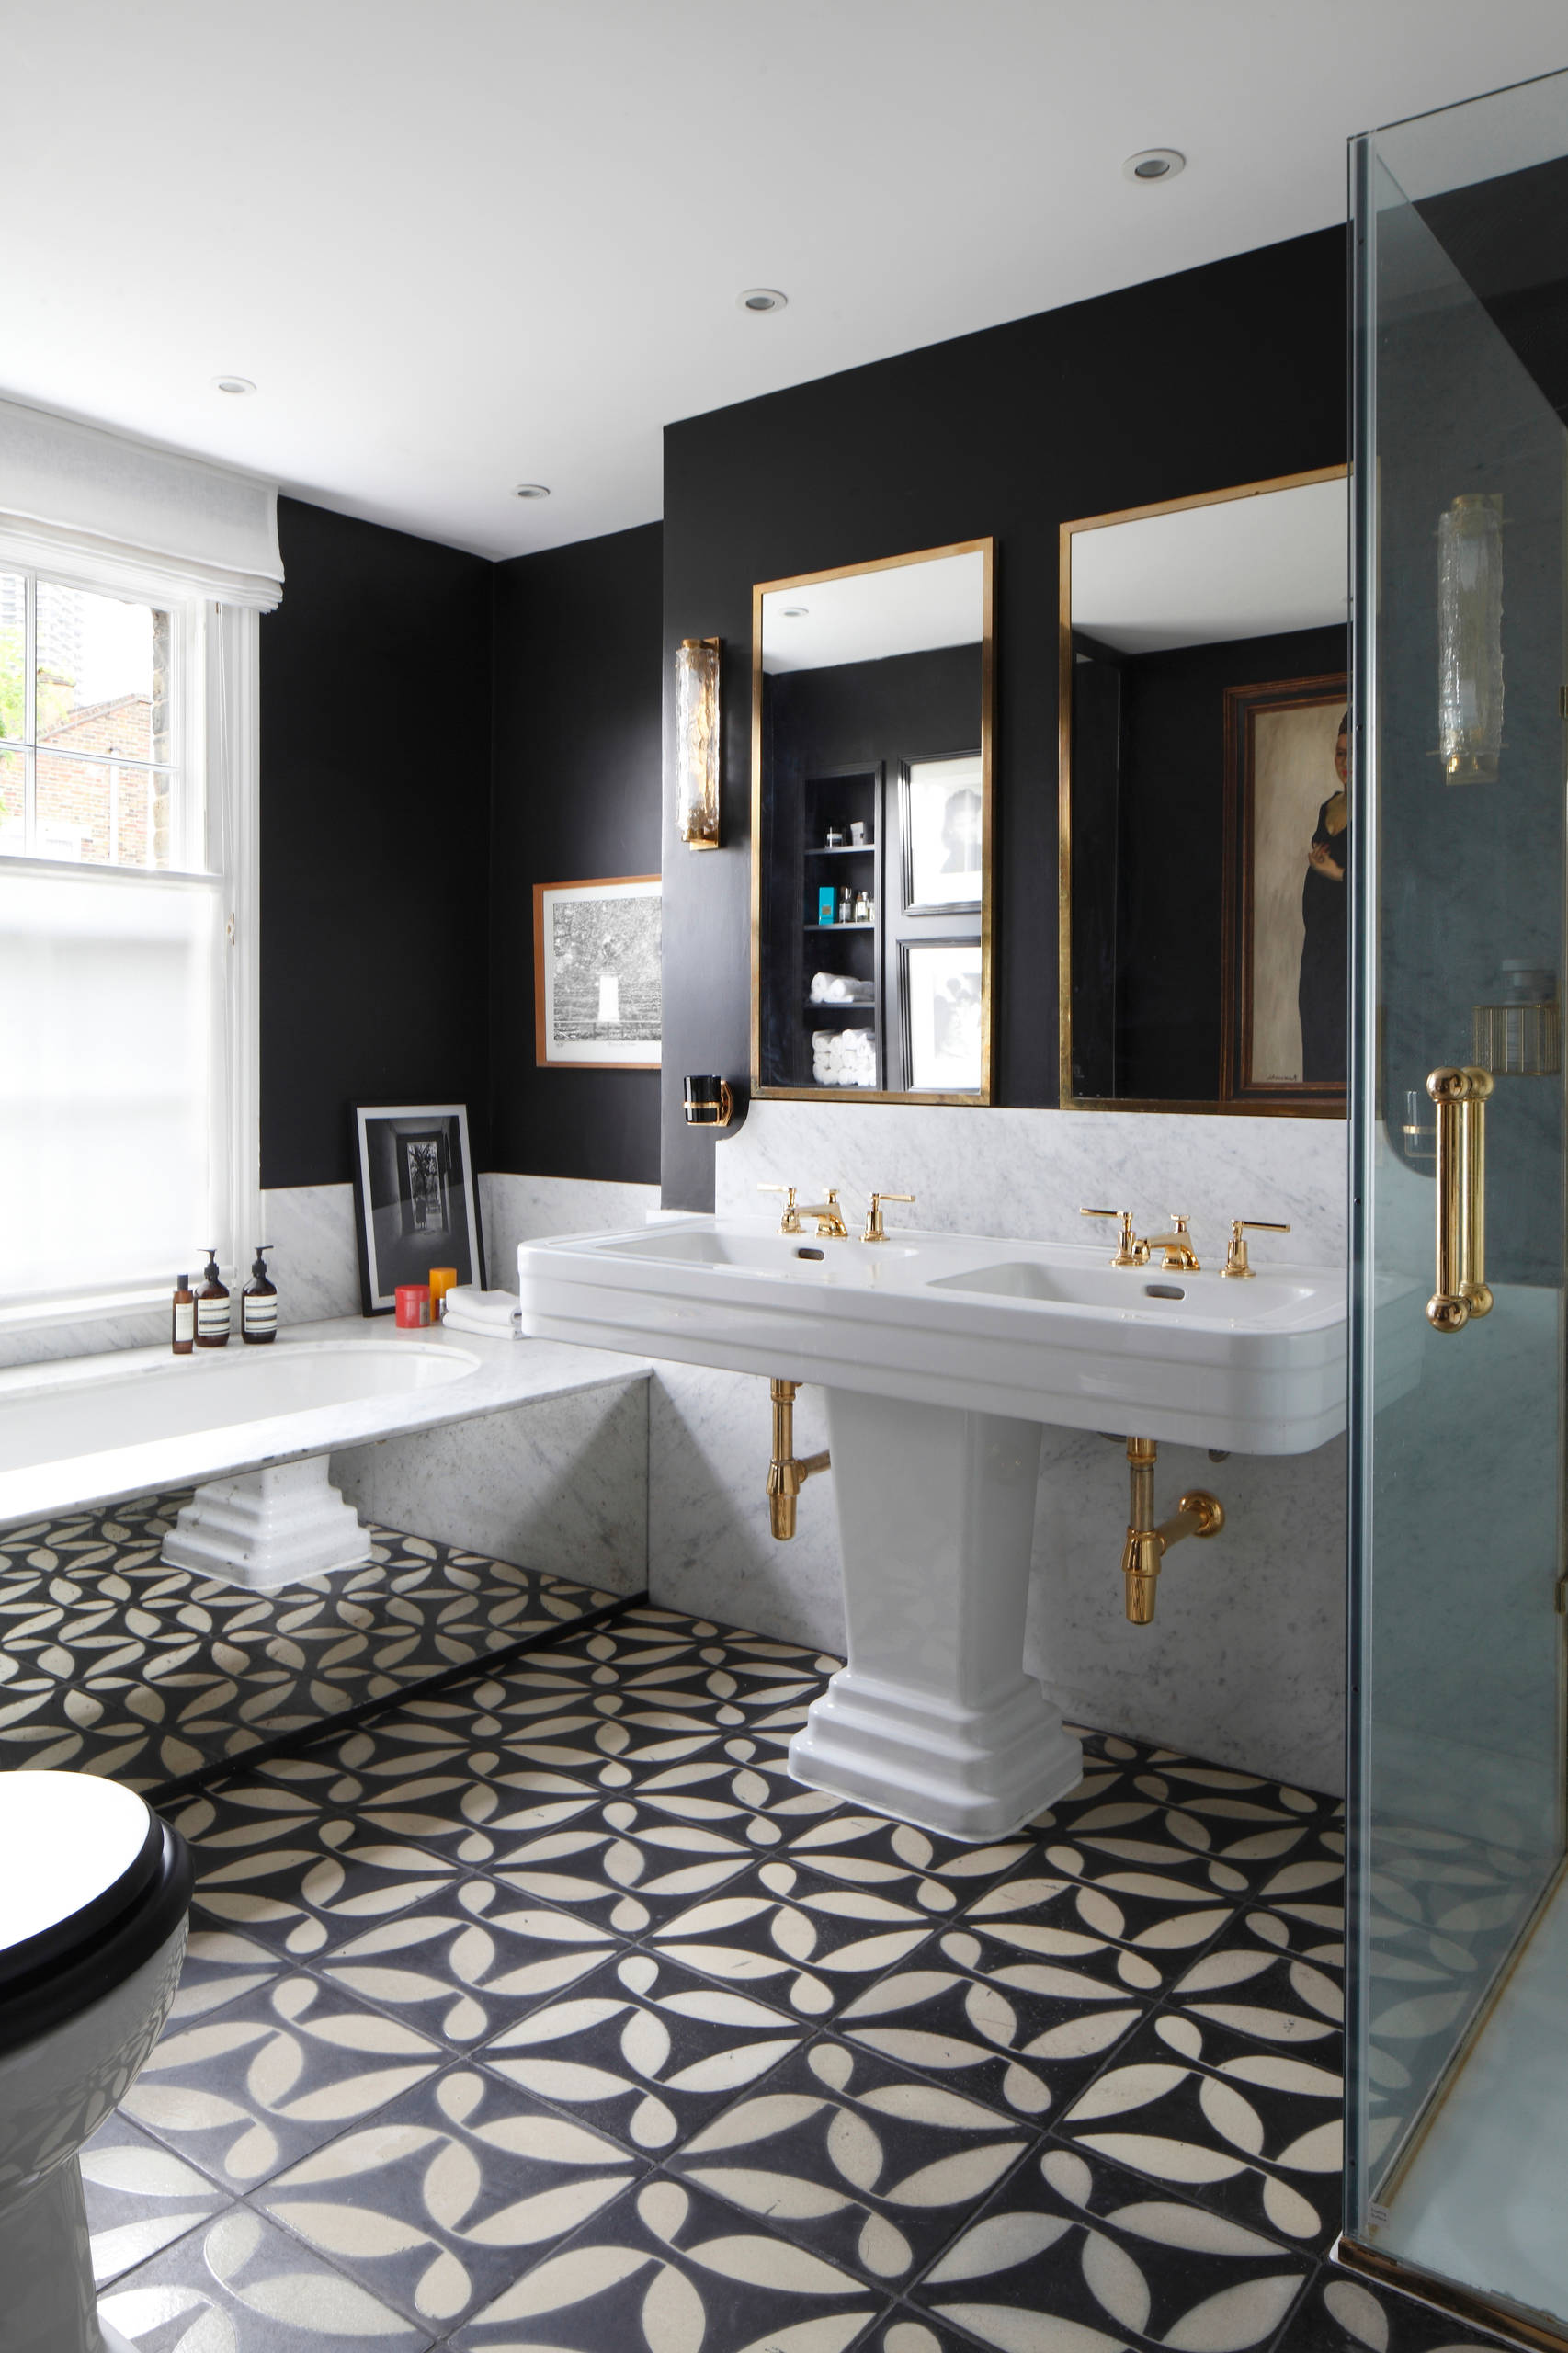 75 Beautiful Bathroom With Black Walls Pictures Ideas April 2021 Houzz